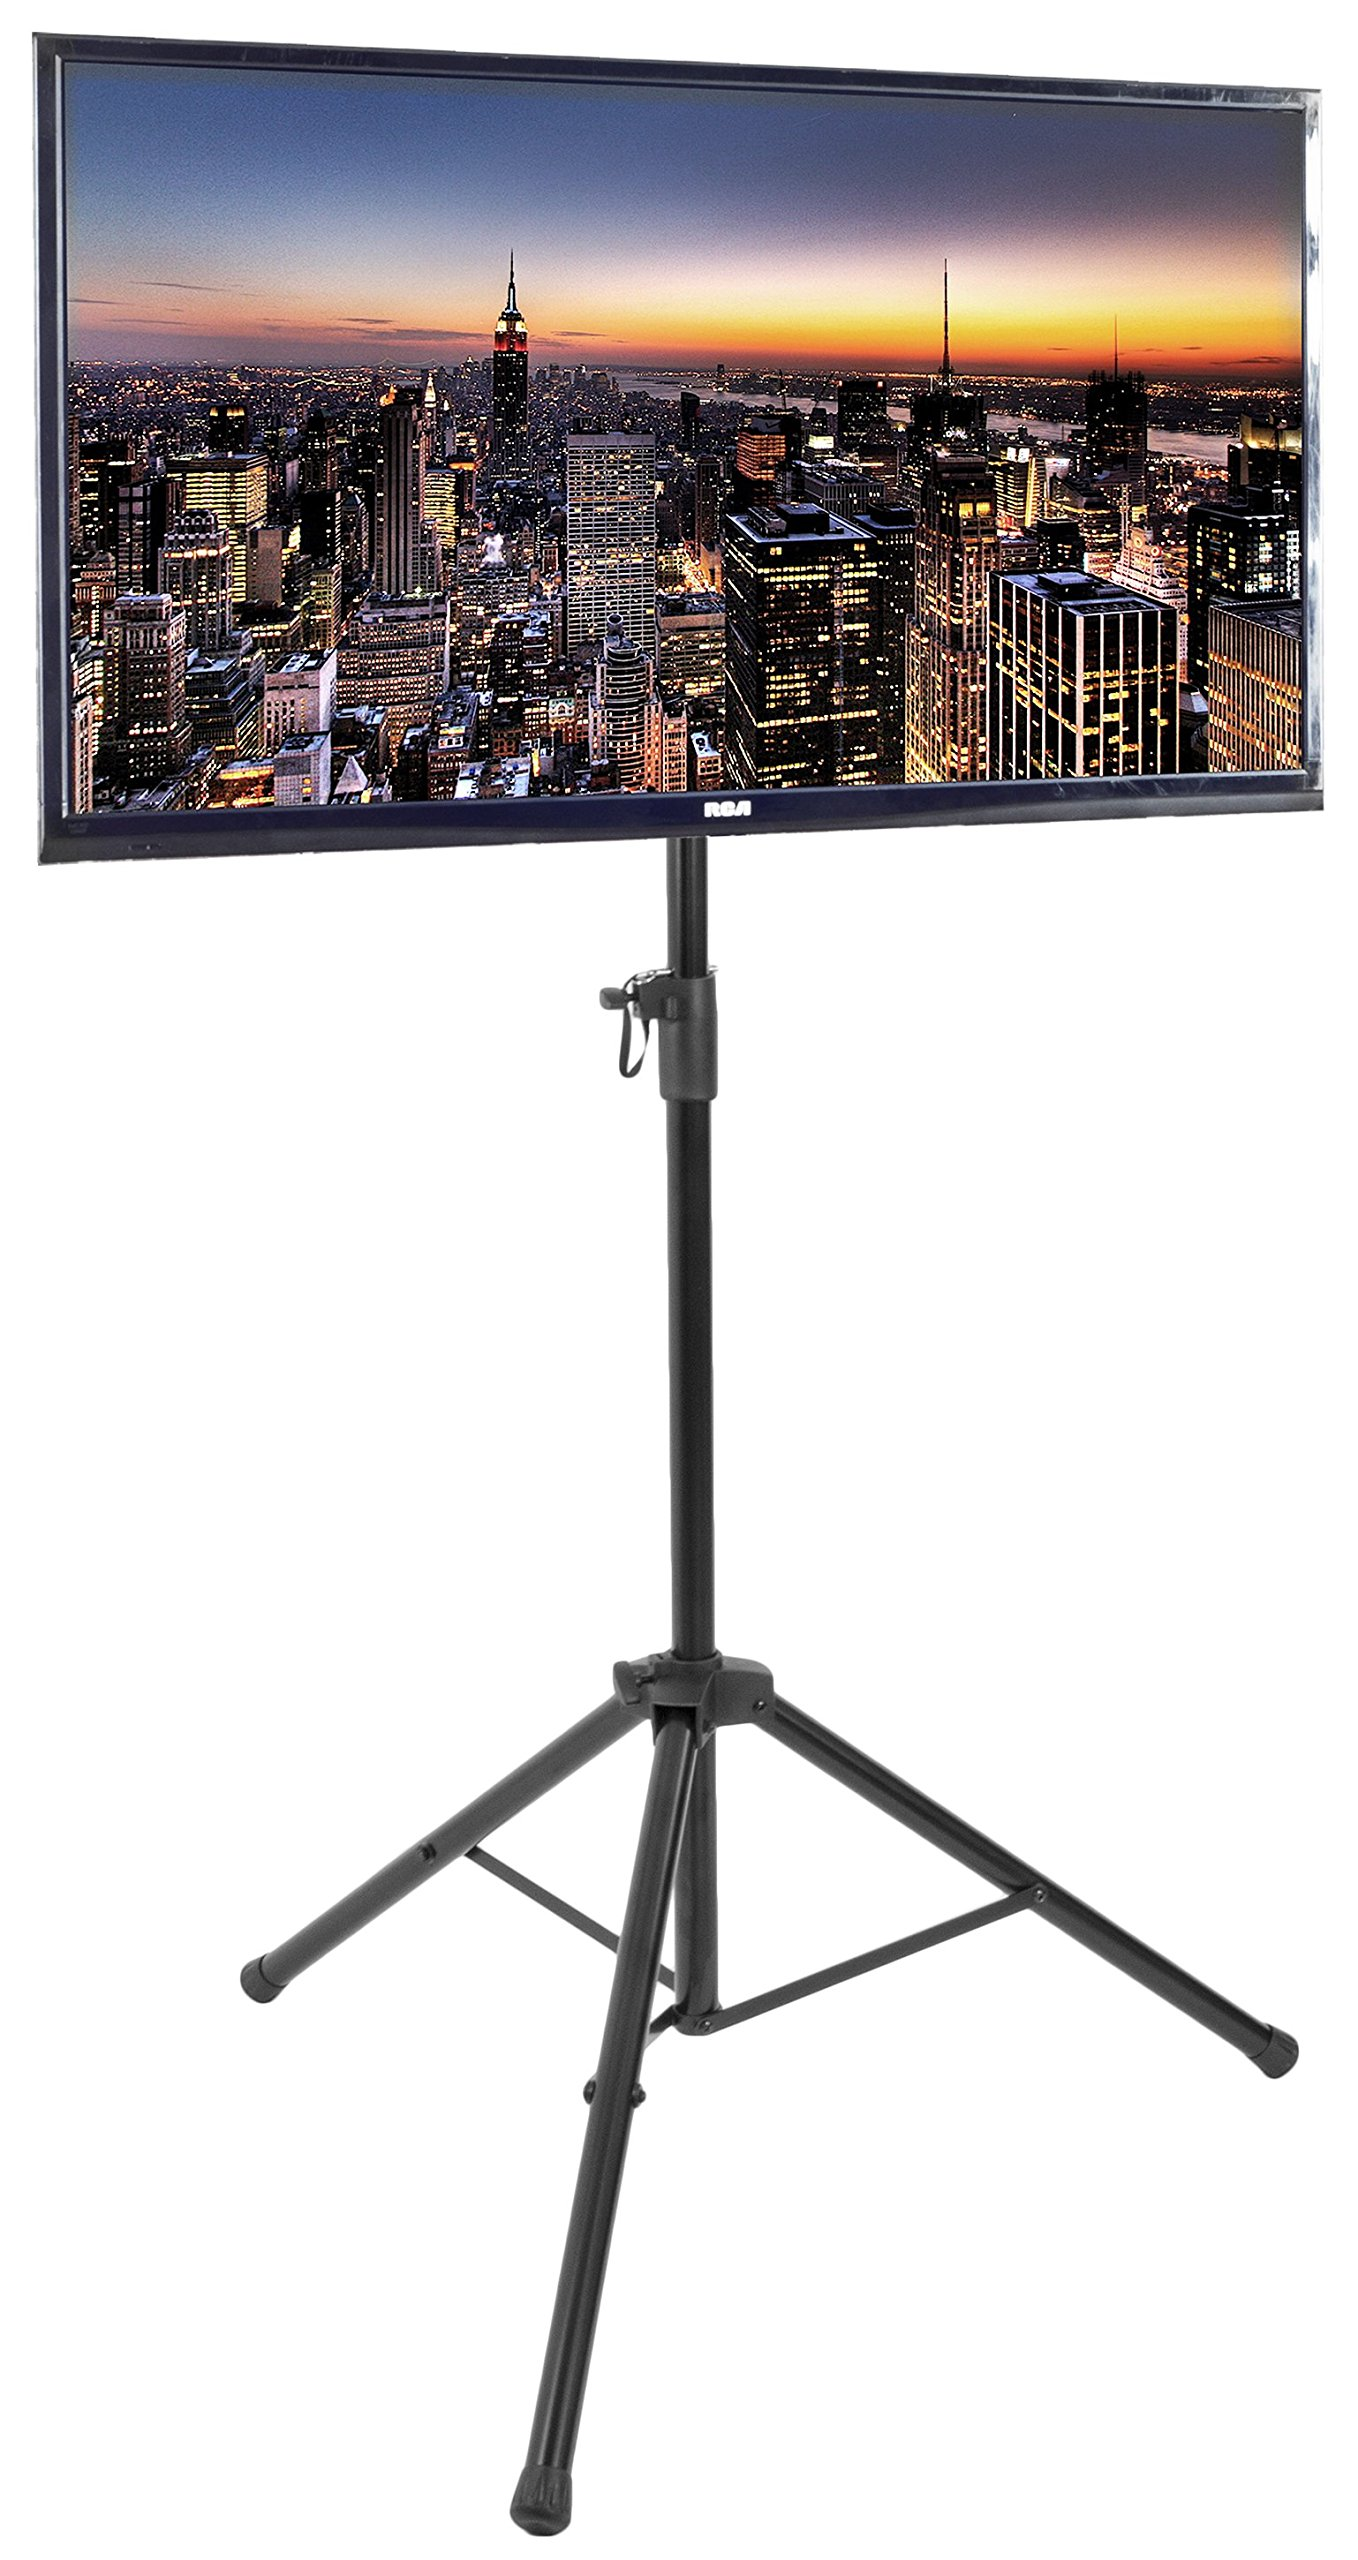 VIVO Black Tripod 32 to 55 inch LCD LED Flat Screen TV Display Floor Stand | Portable Height Adjustable Mount (STAND-TV55T) by VIVO